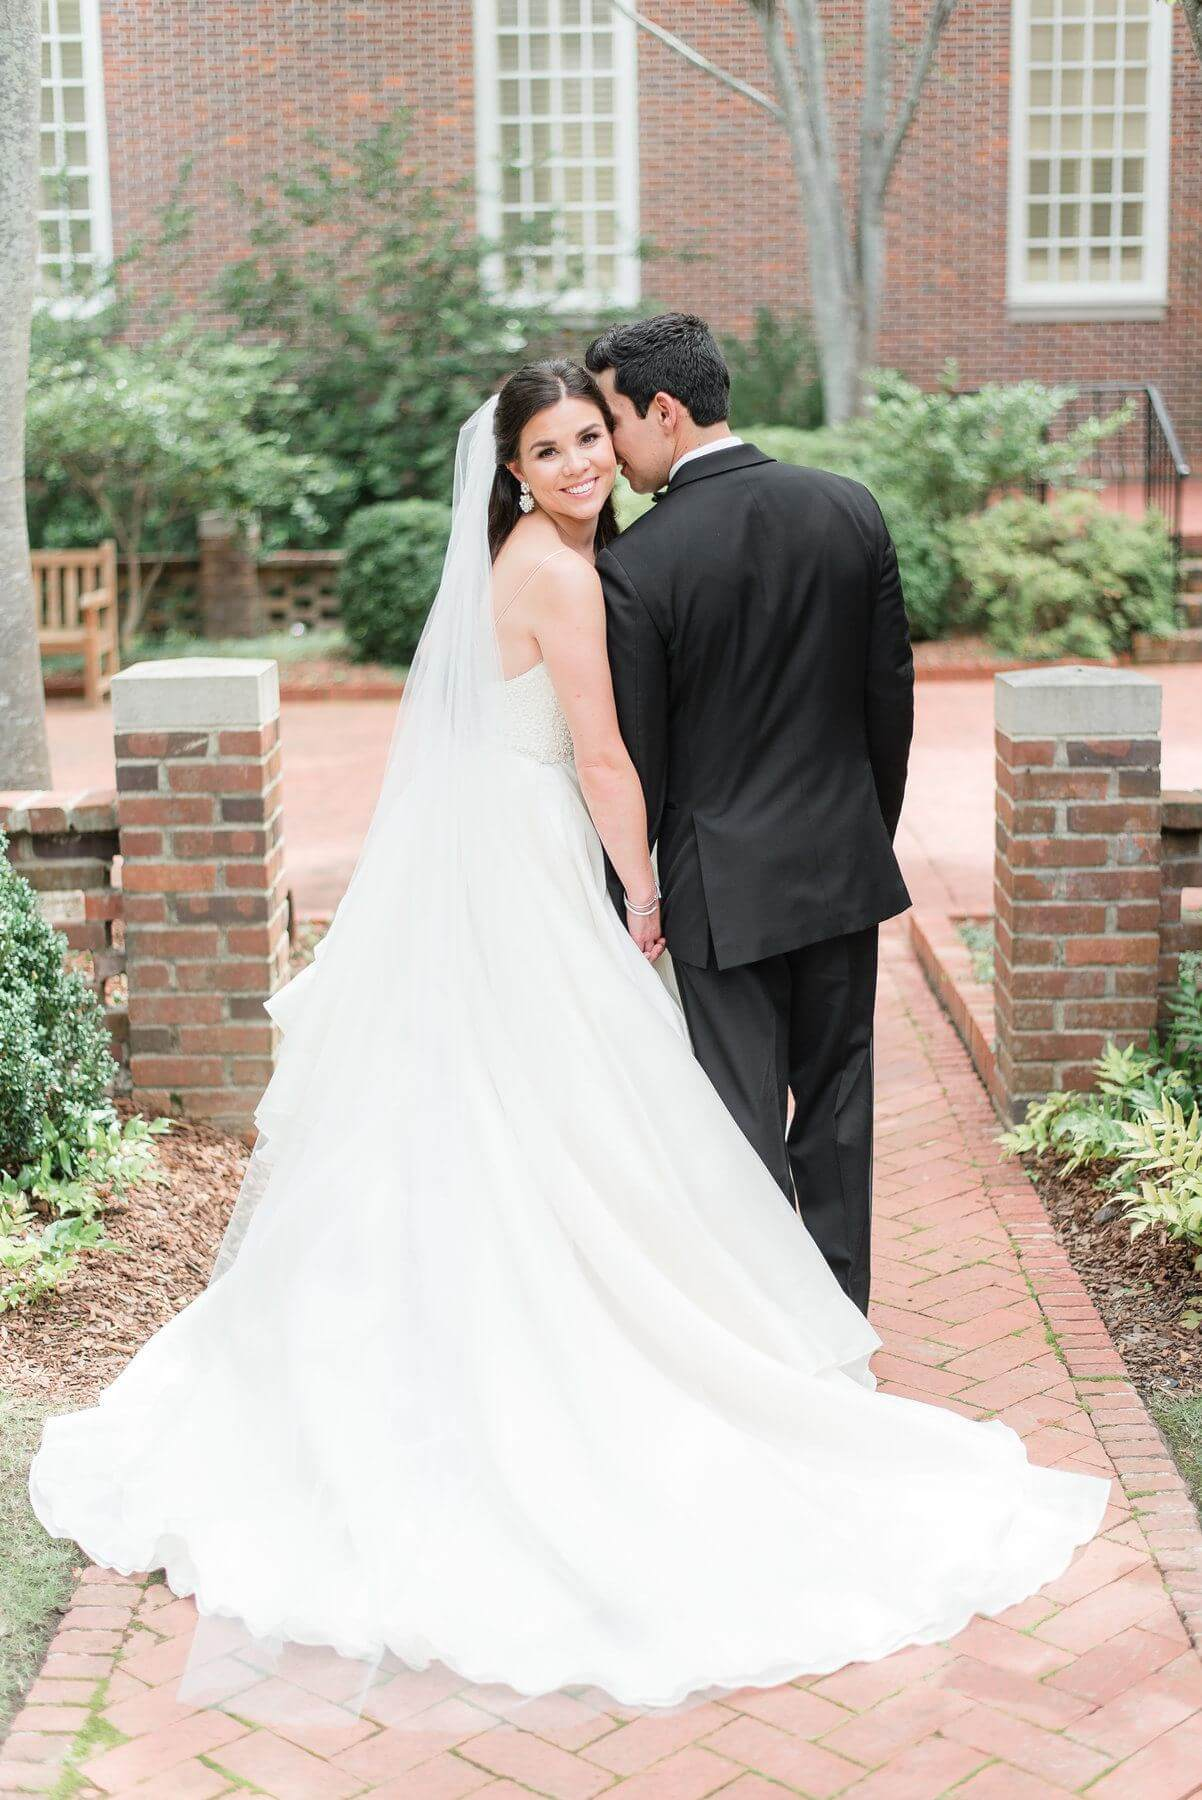 This sweet couple steals a few moments together before the ceremony.